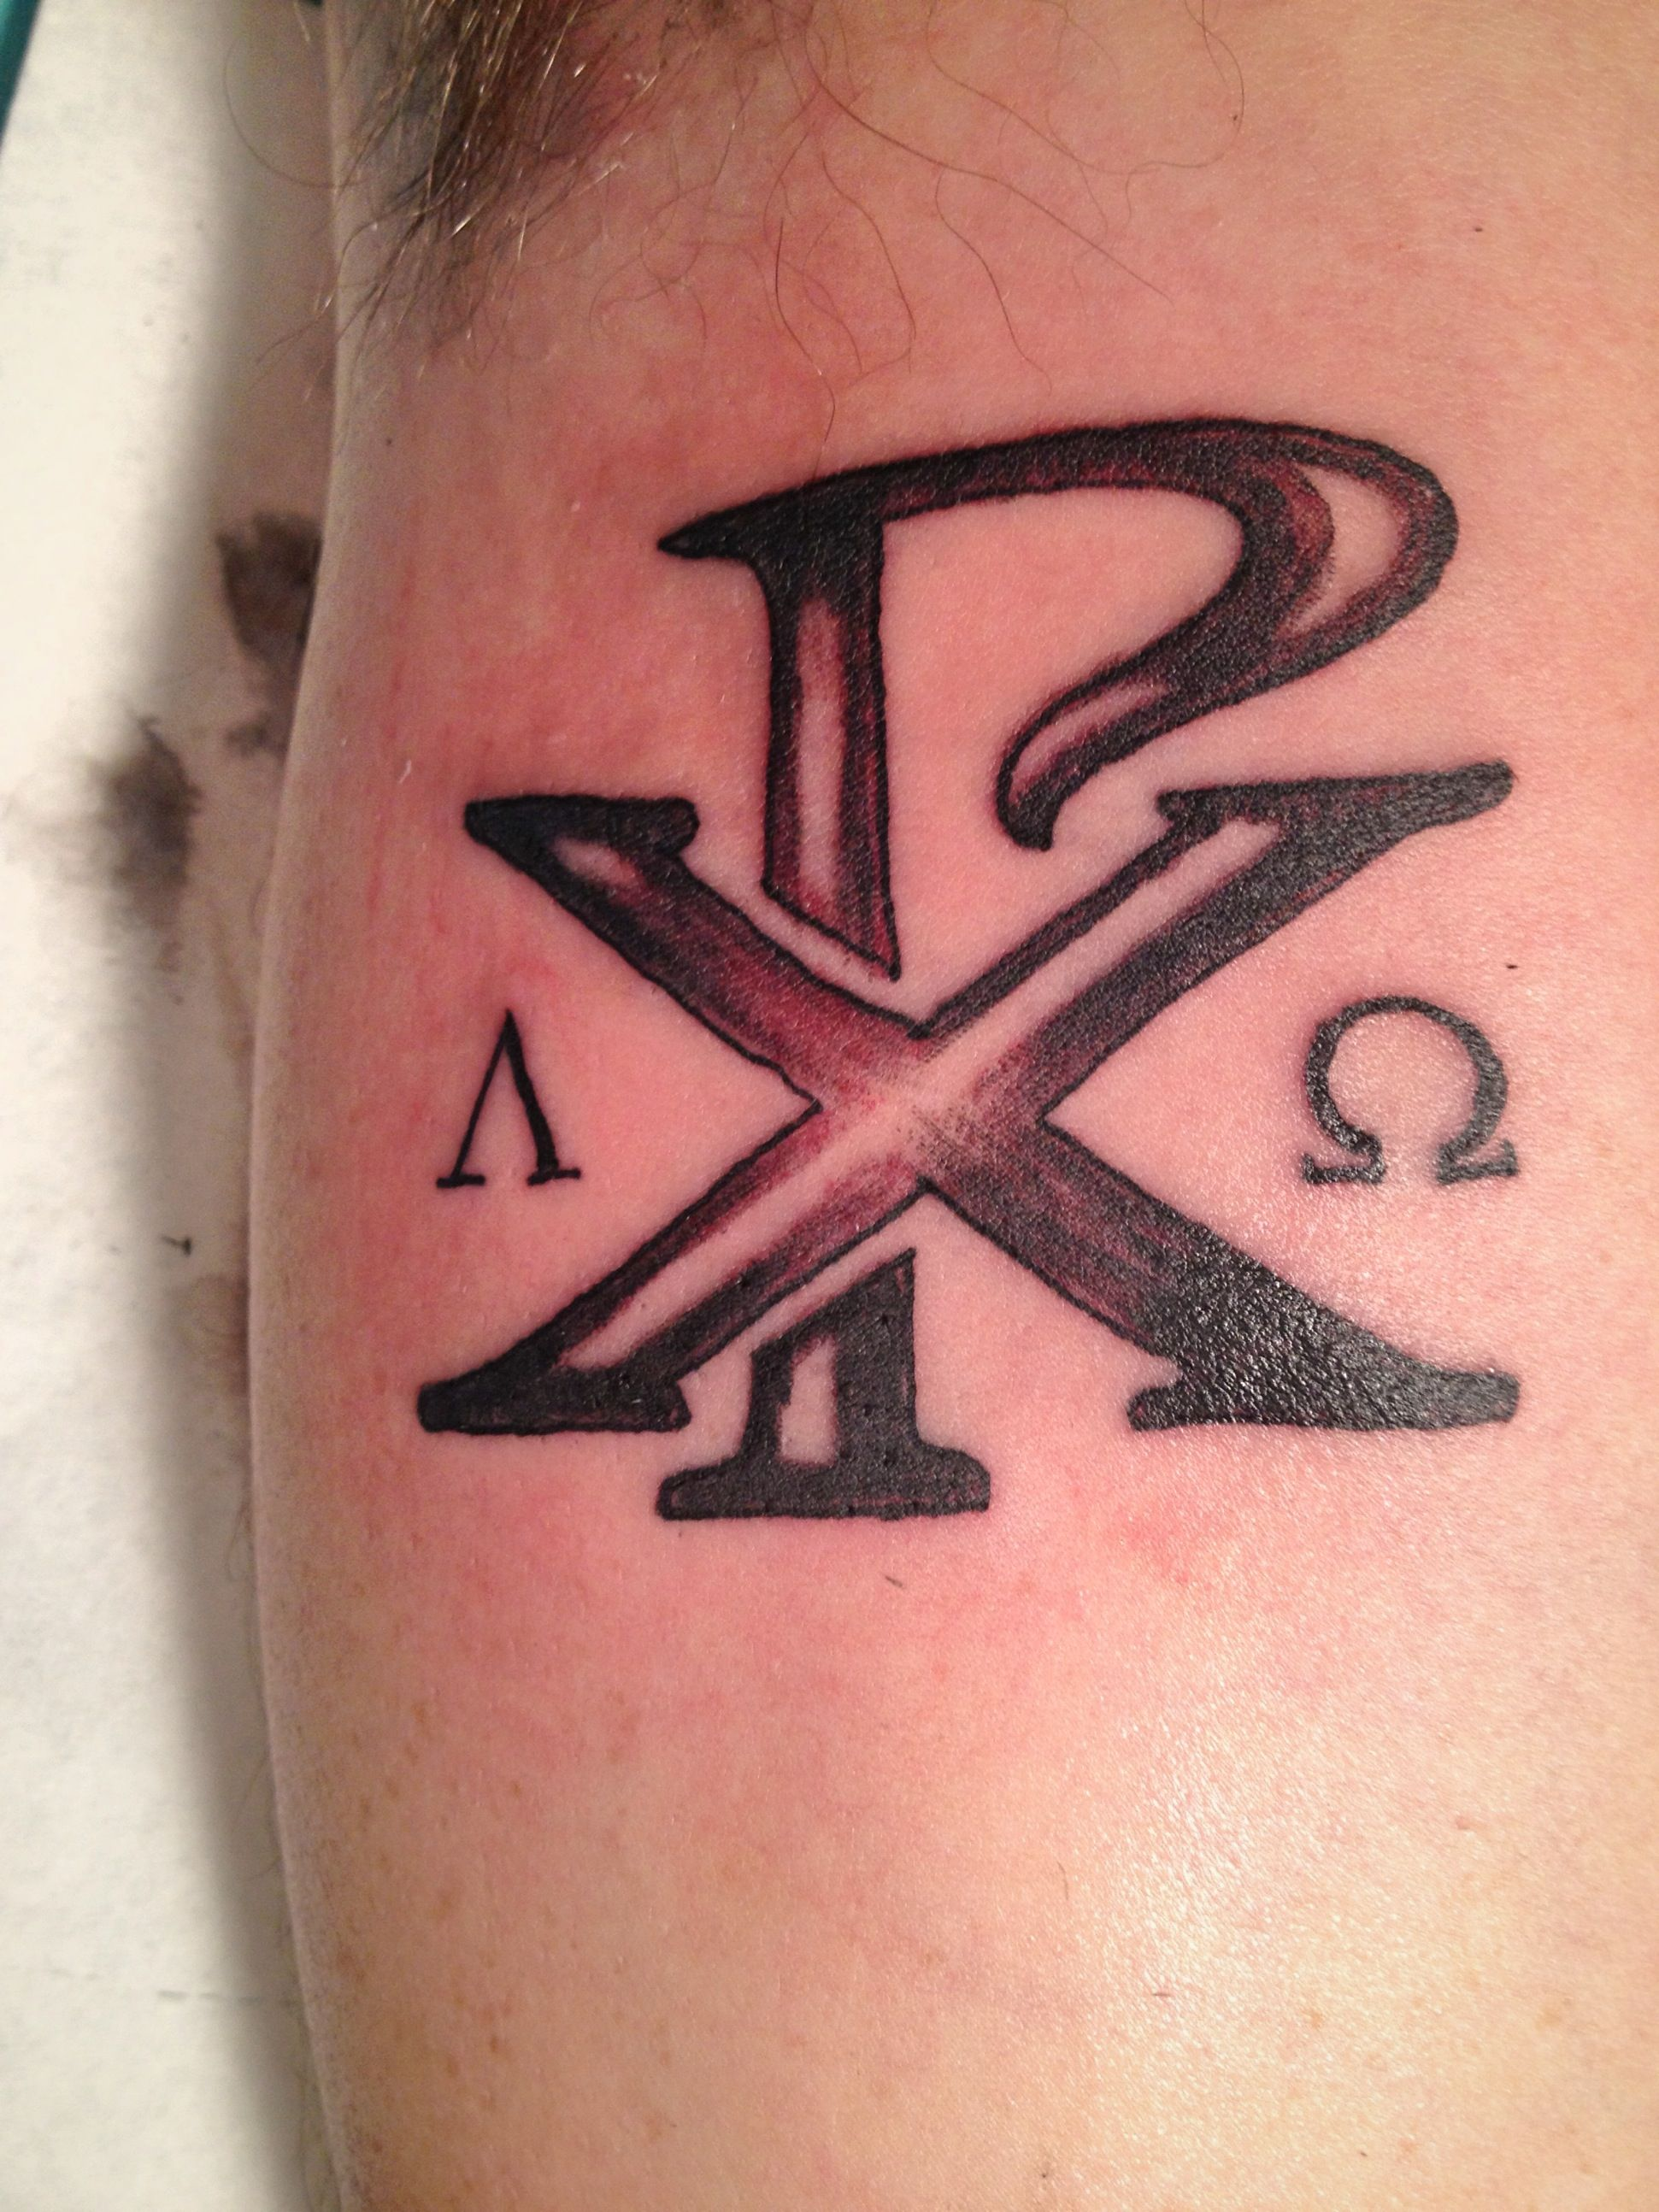 Christ in greek along with alpha and omega symbols get inked christ in greek along with alpha and omega symbols buycottarizona